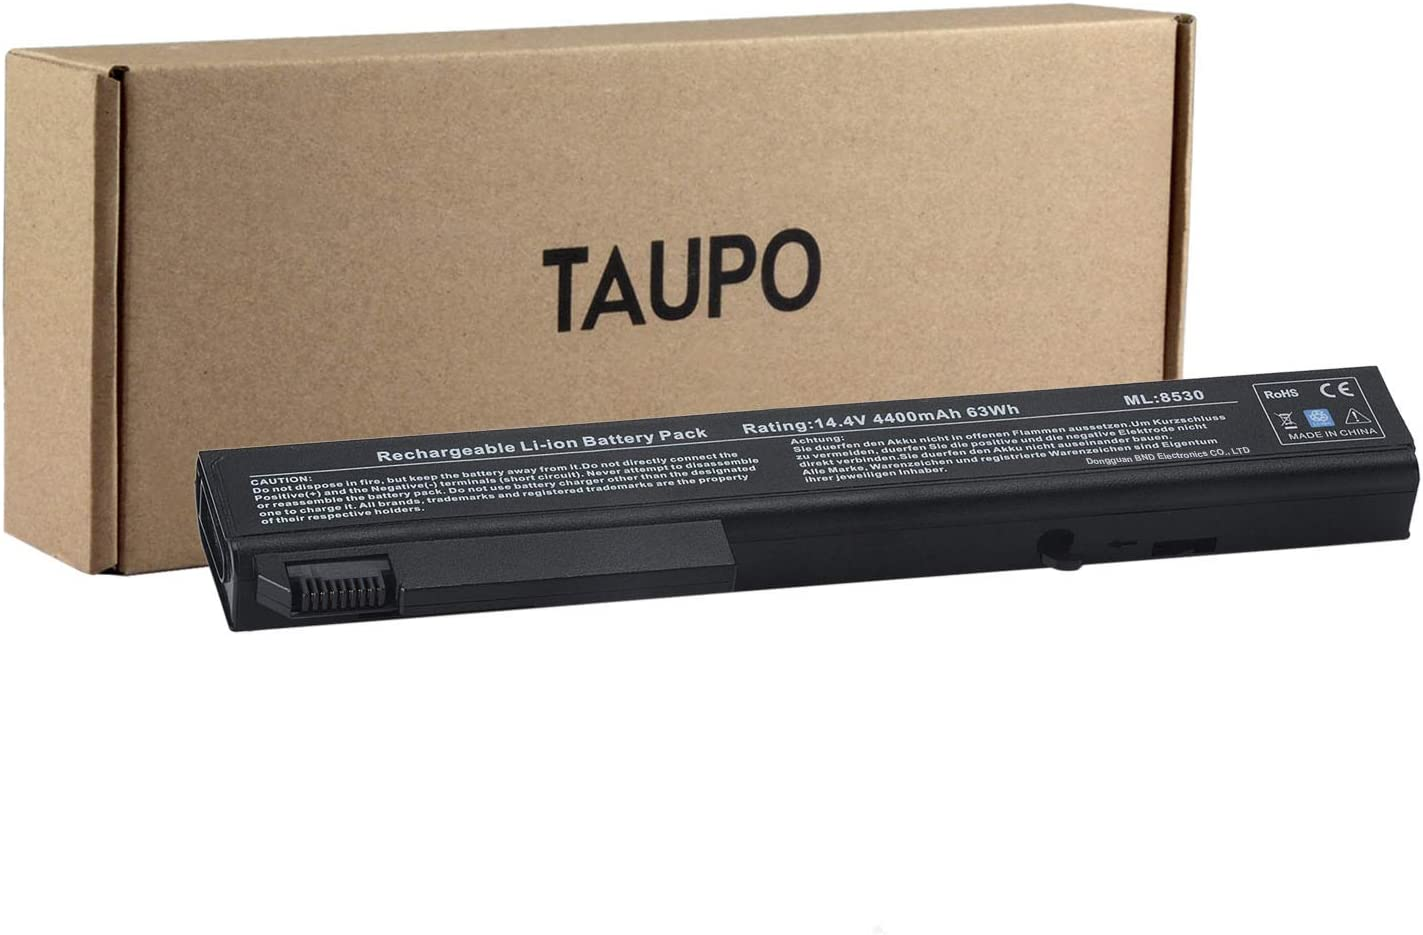 TAUPO 493976-001New Laptop Battery Compatible with HP EliteBook 8530p 8540p 8730w 8530w 8540w, ProBook 6545b,fit 493976-001 AV08 AV08XL KU533AA HSTNN-LB60 HSTNN-XB60